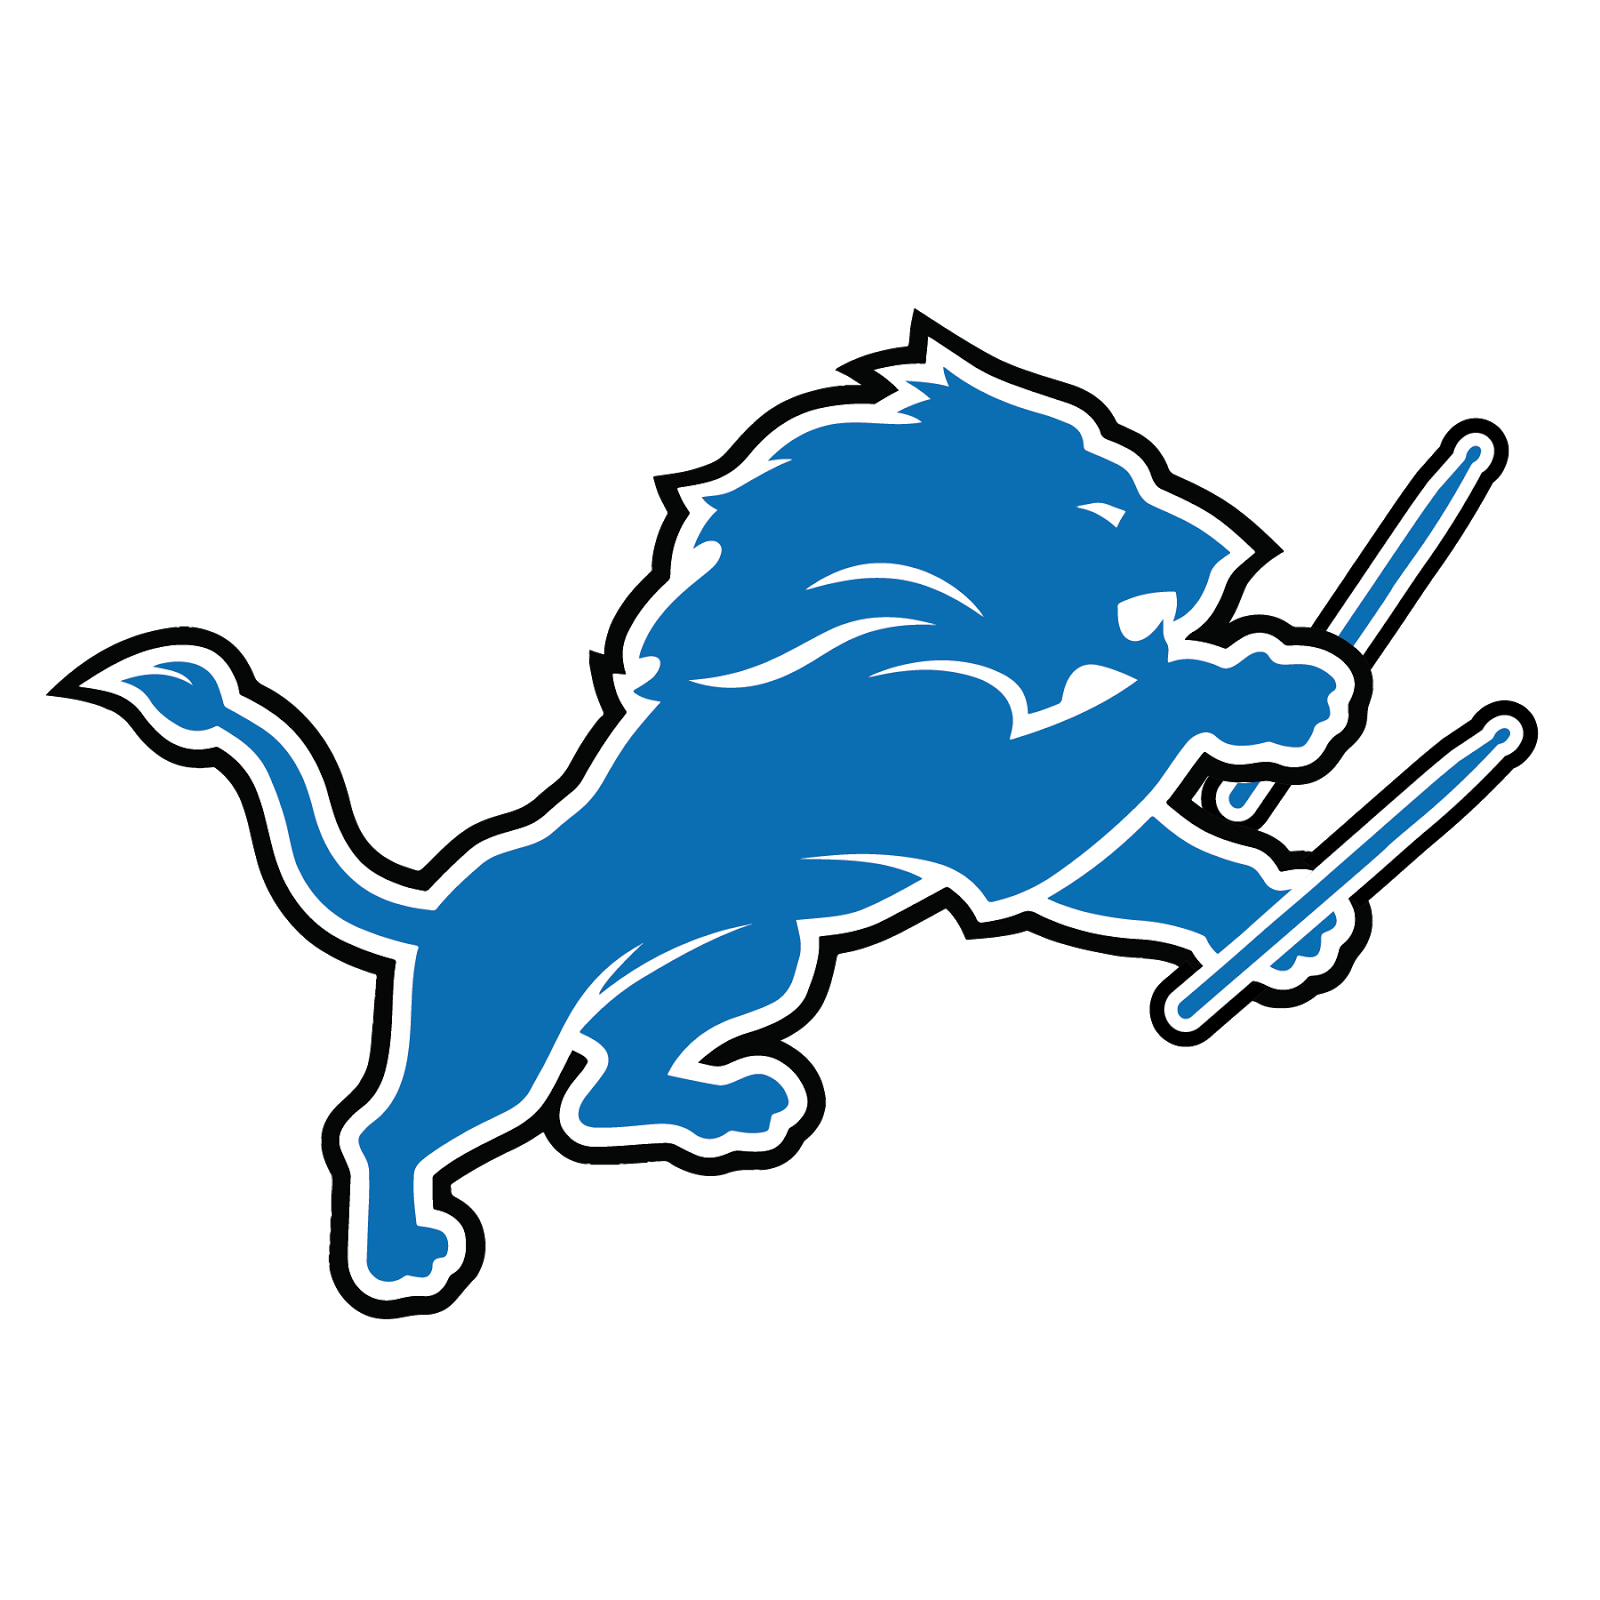 Detroit Lions, metal, logo, re-imagined